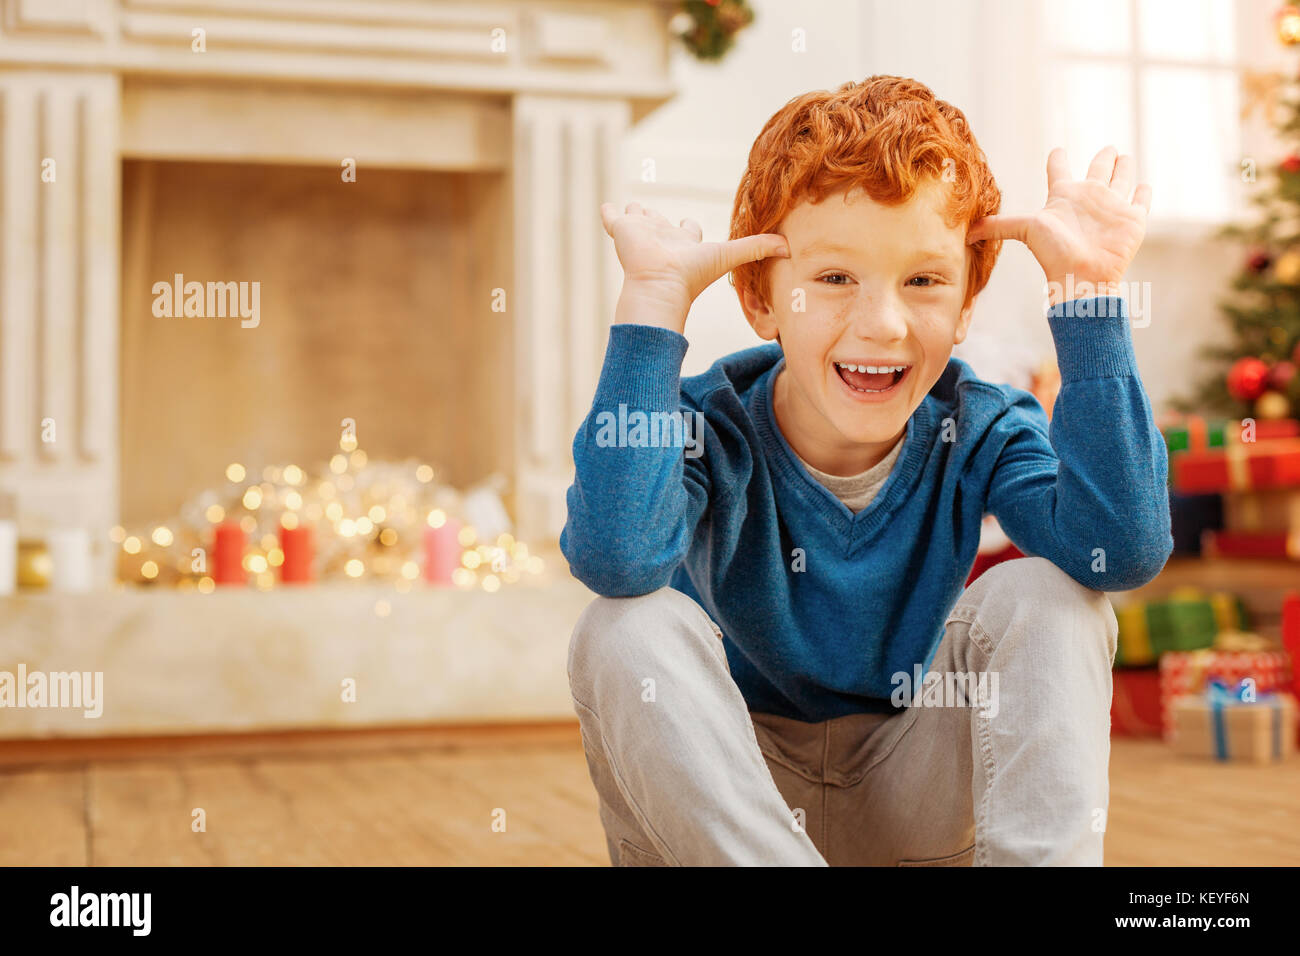 Funny redhead boy making faces while sitting on floor - Stock Image